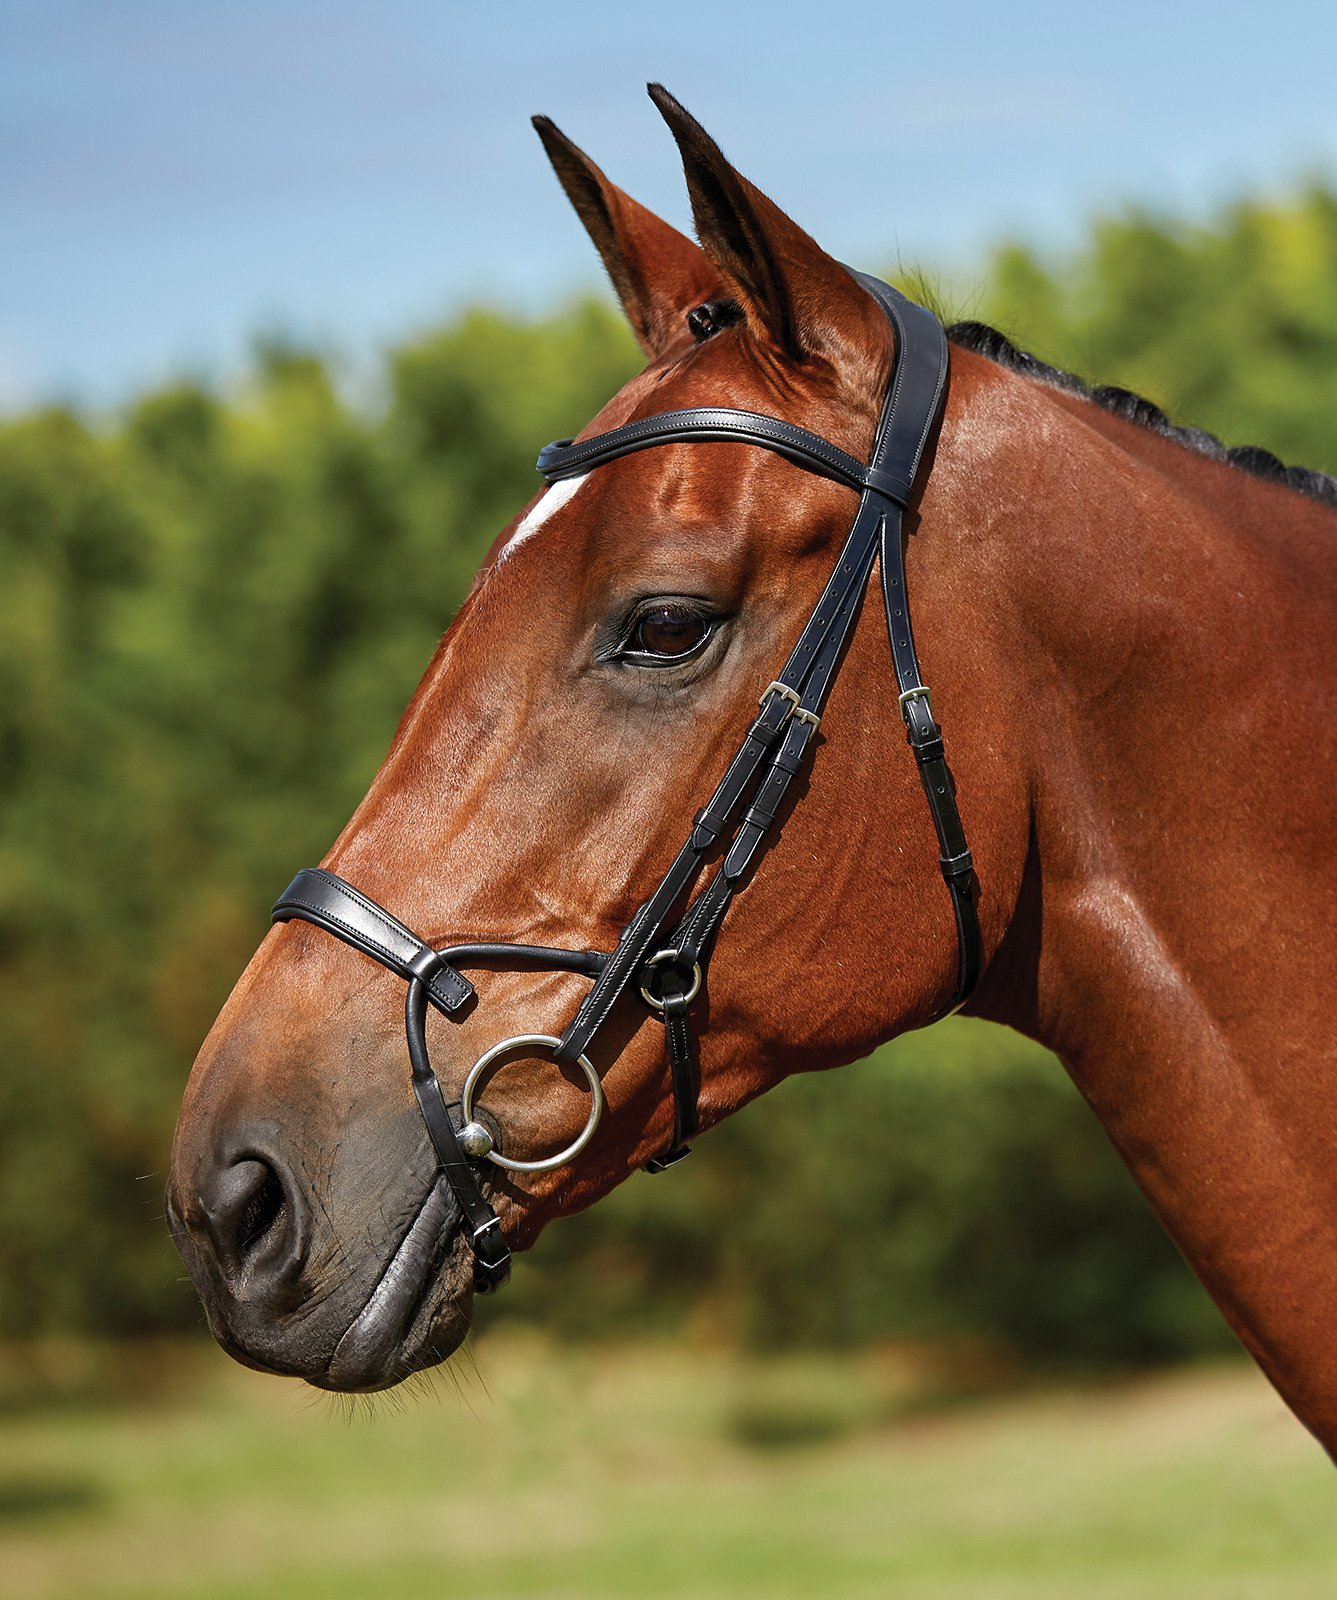 Robinsons Equestrian Home Page